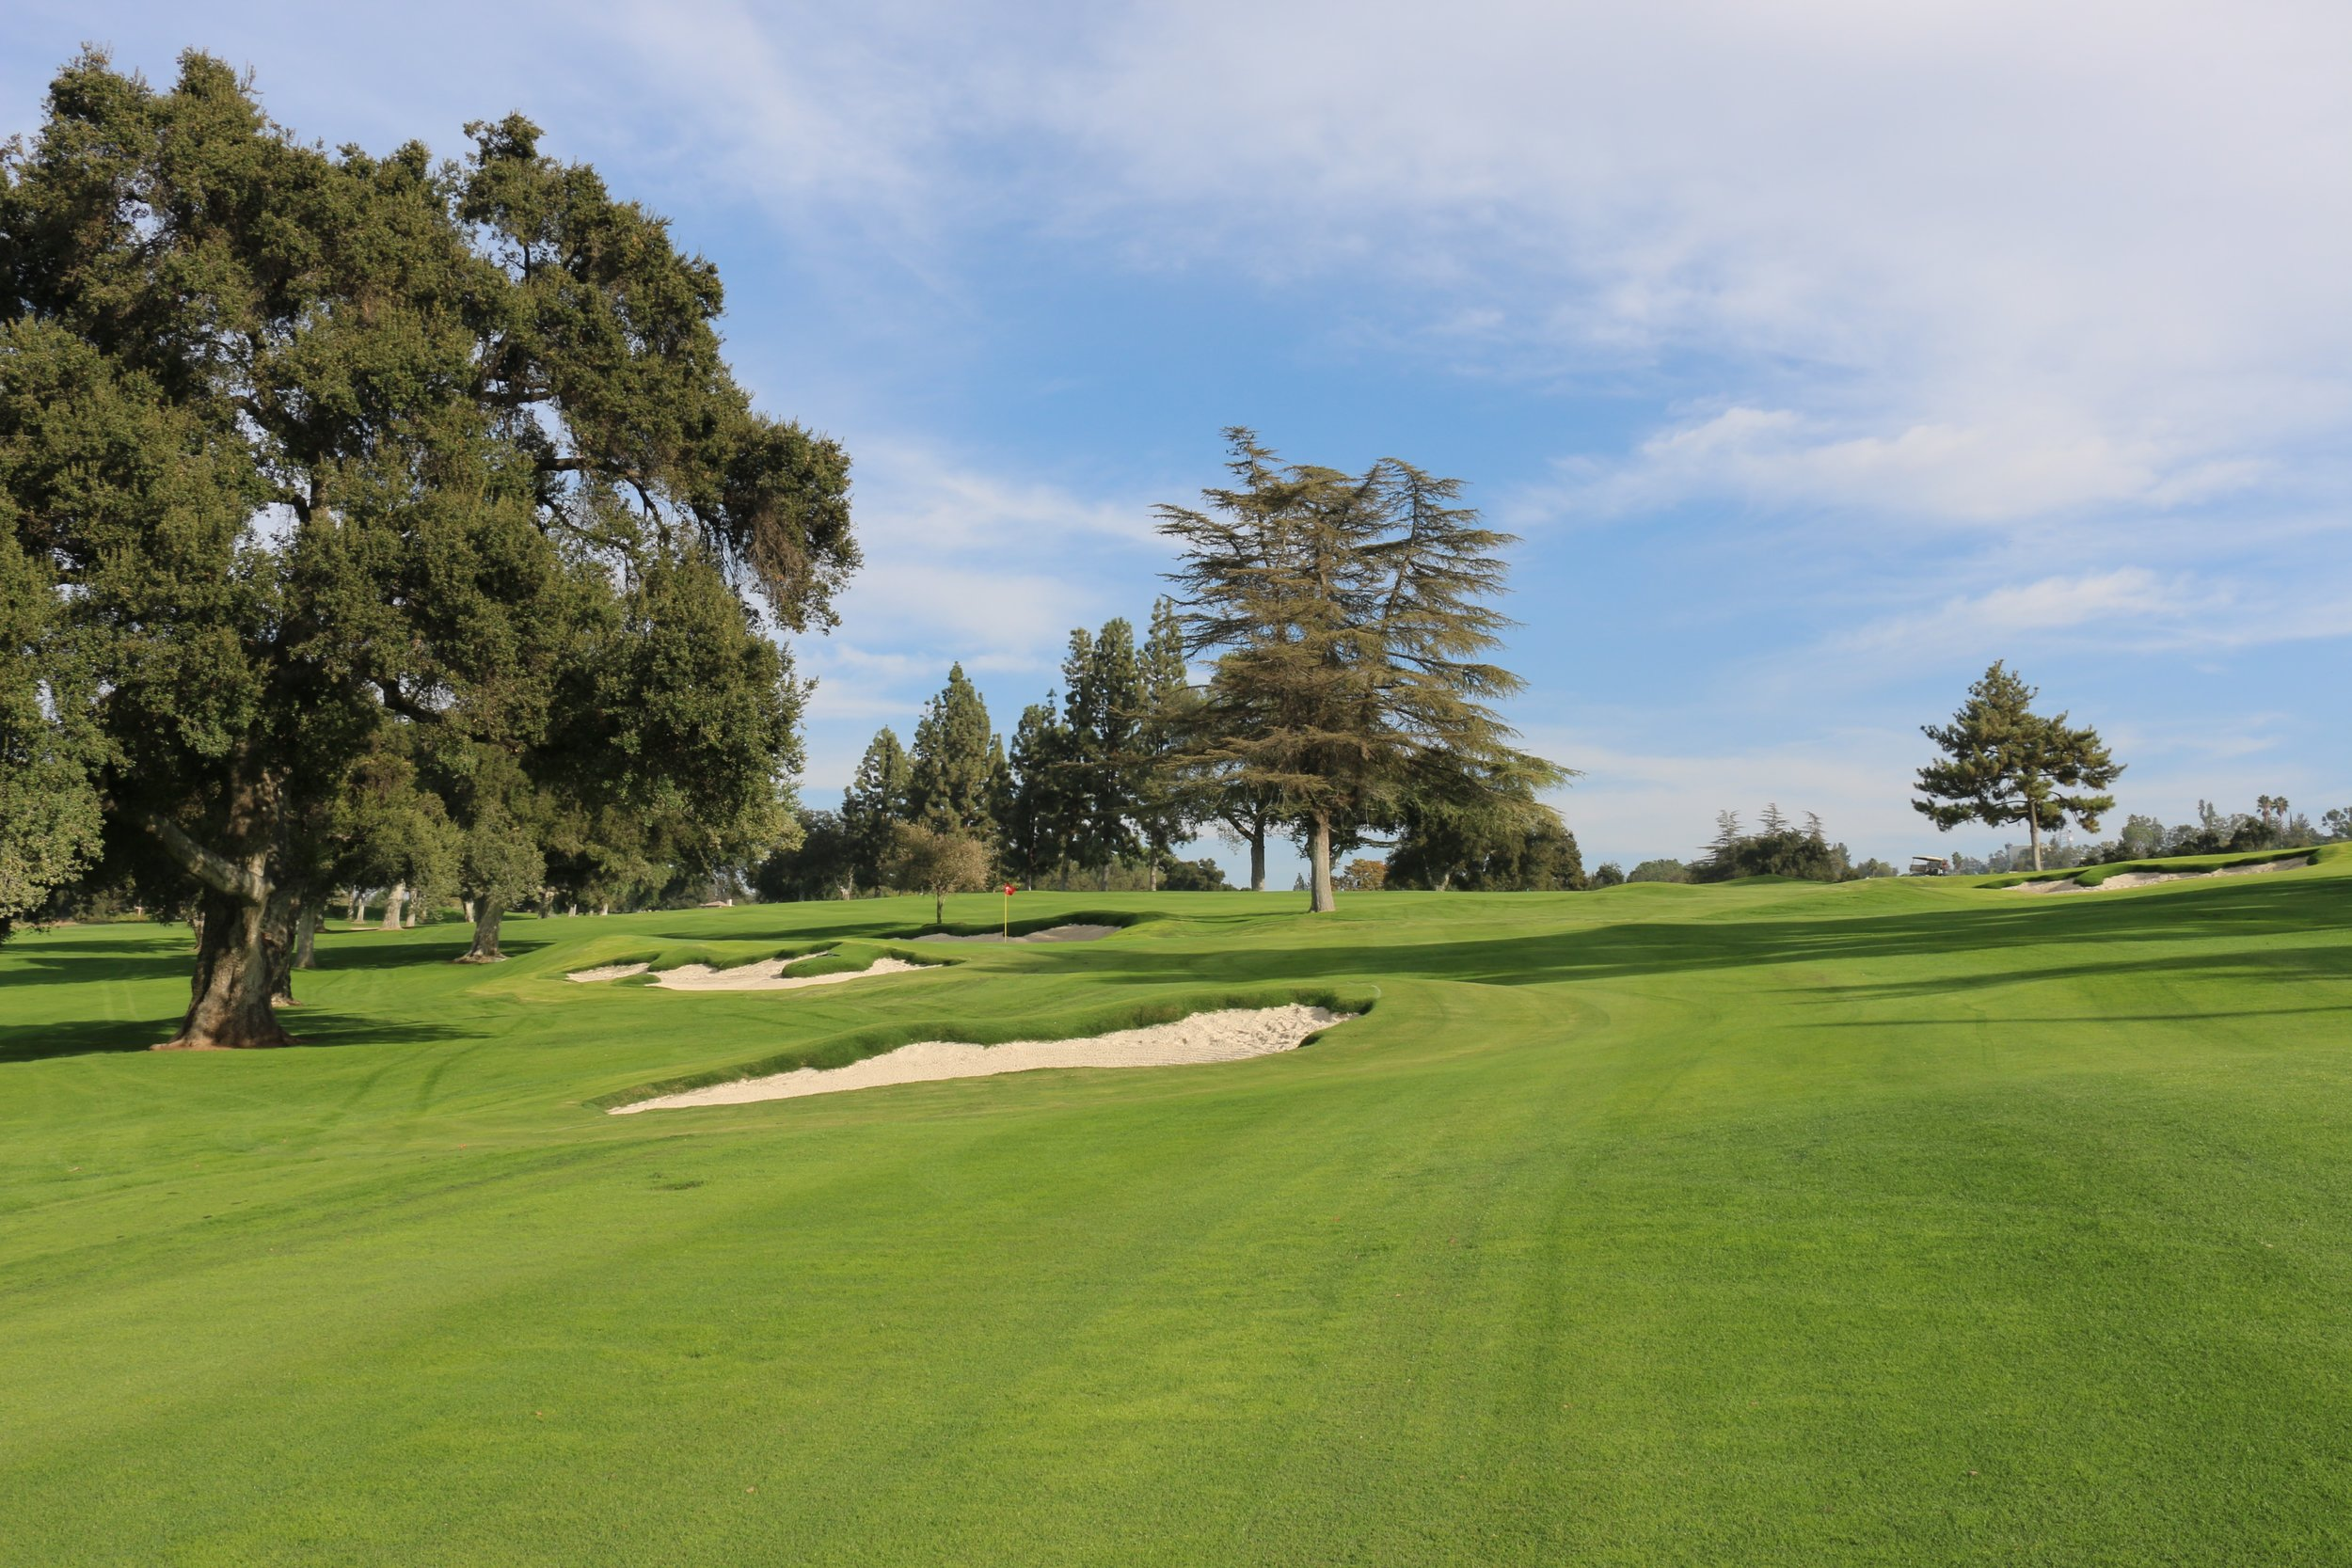 Another view from further down the fairway not long after grow-in. (Image courtesy of Todd Eckenrode, Origins Golf Design.)